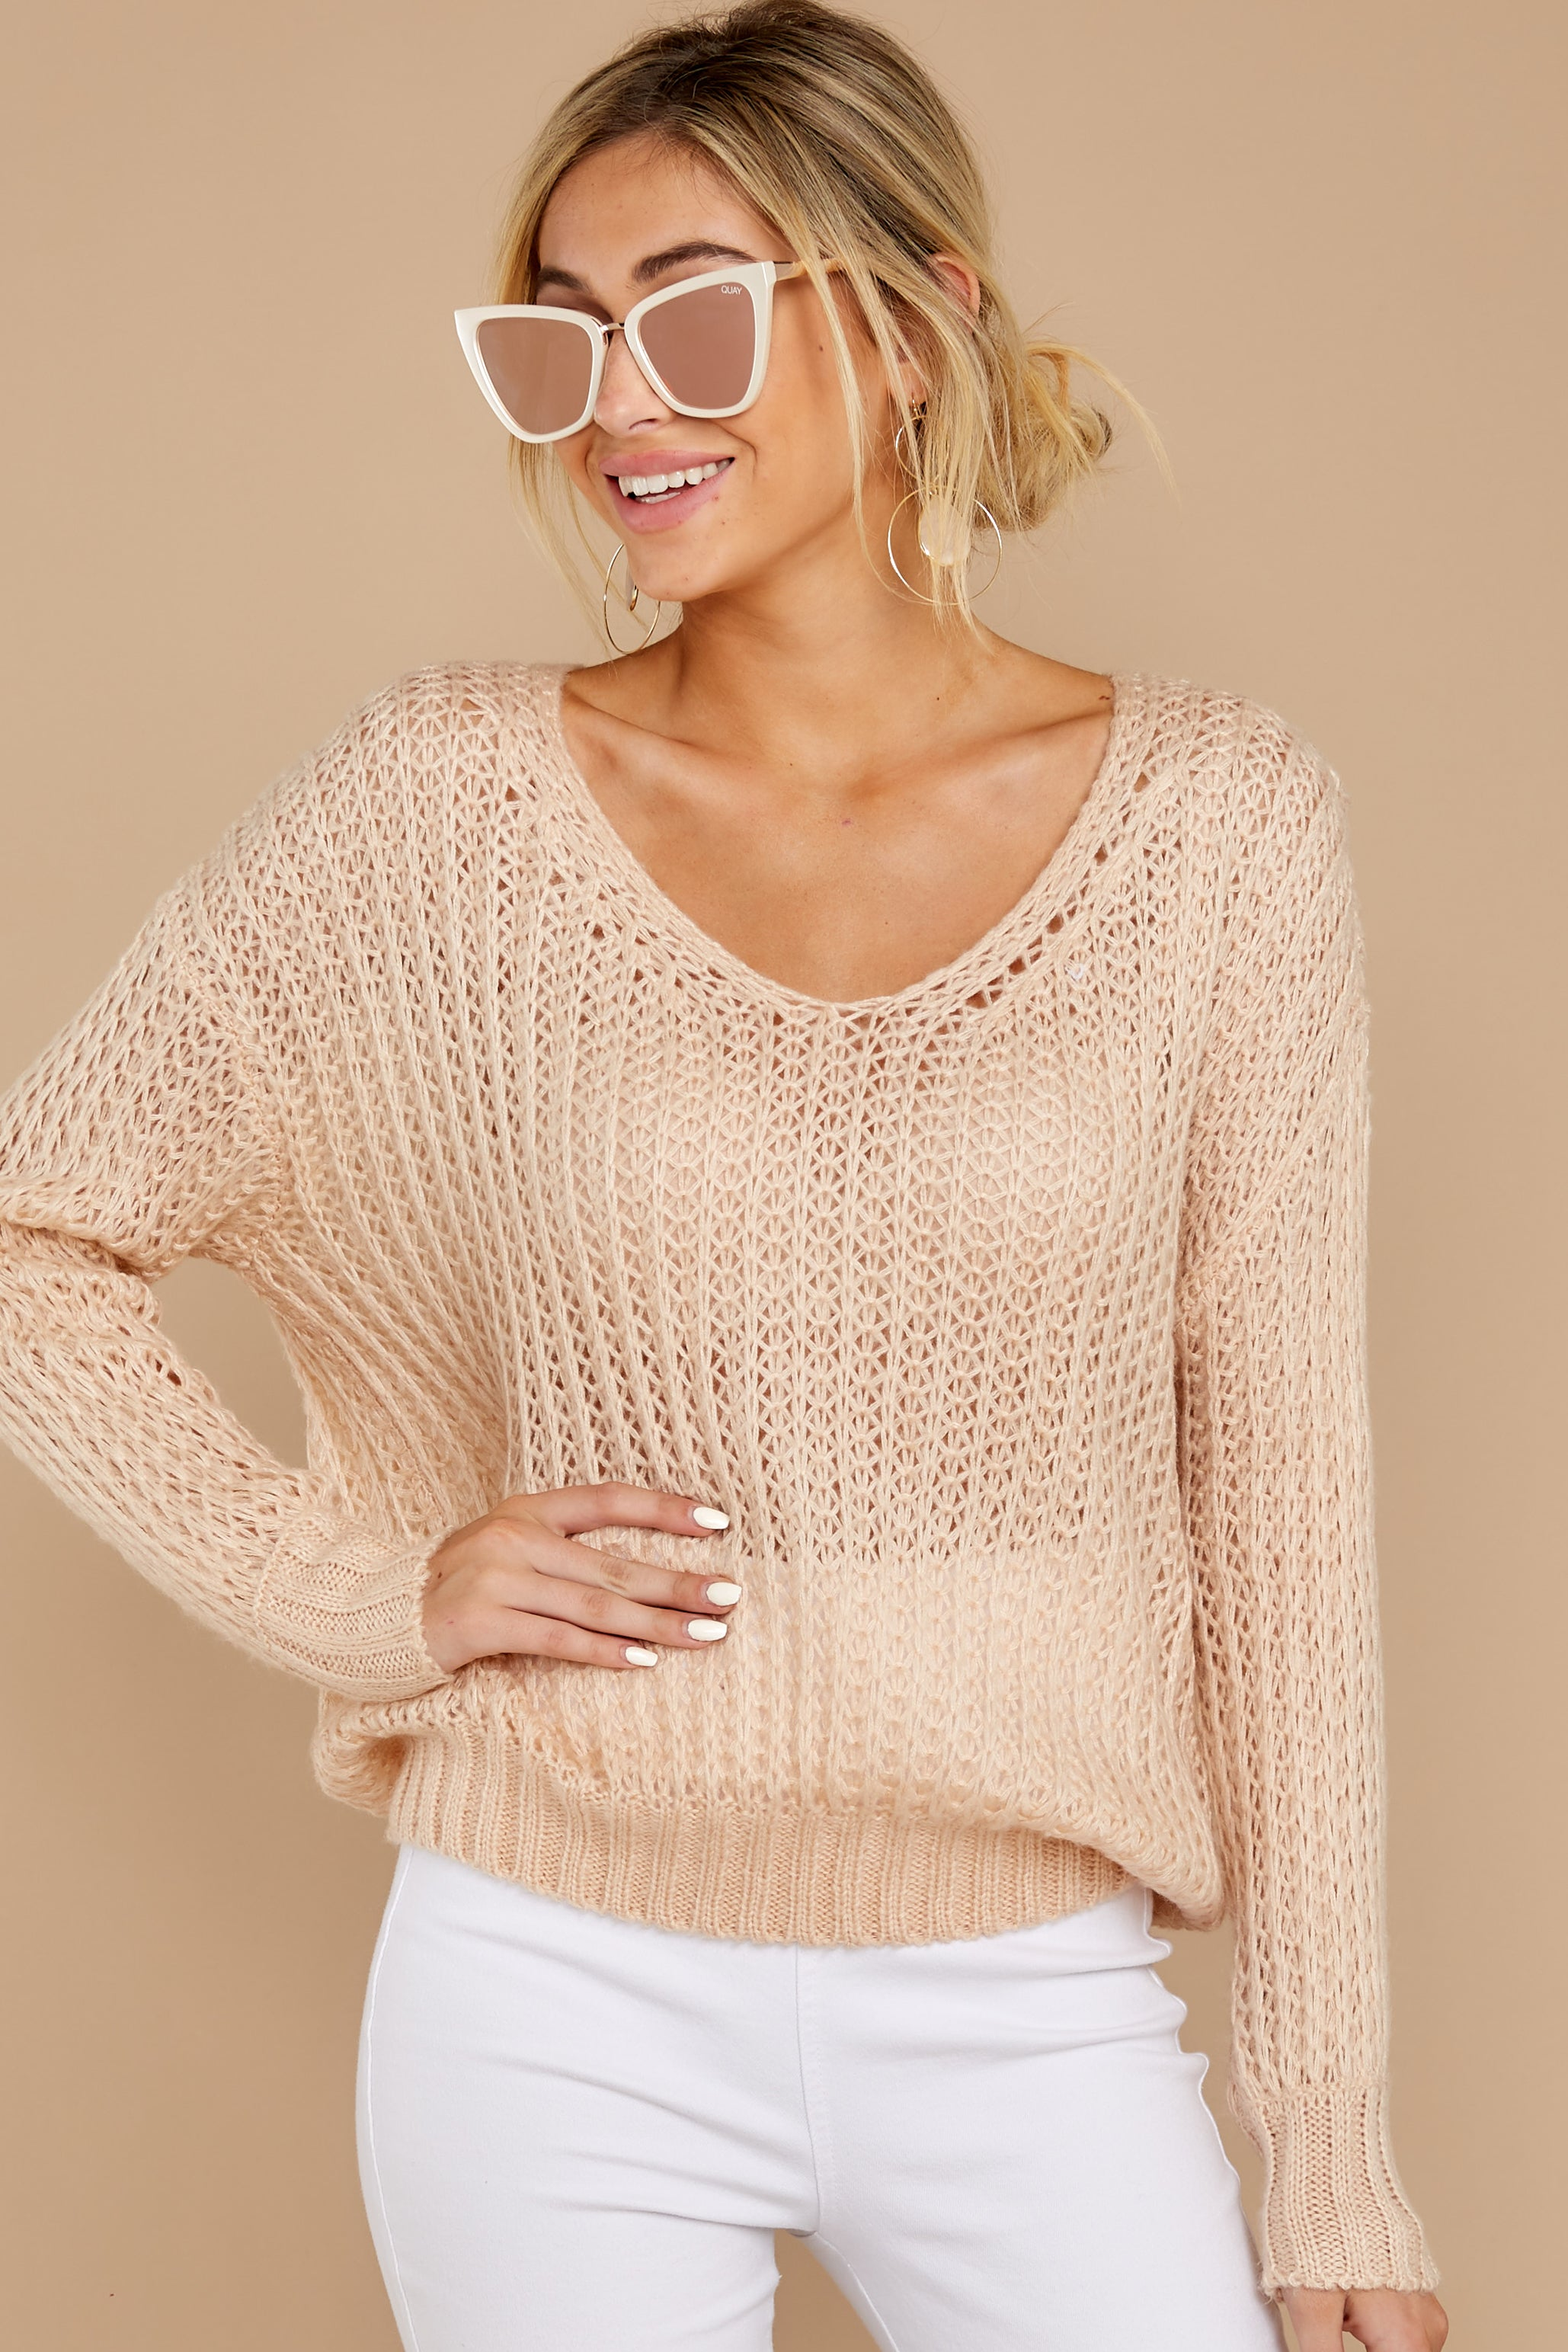 My Side Of Town Beige Sweater